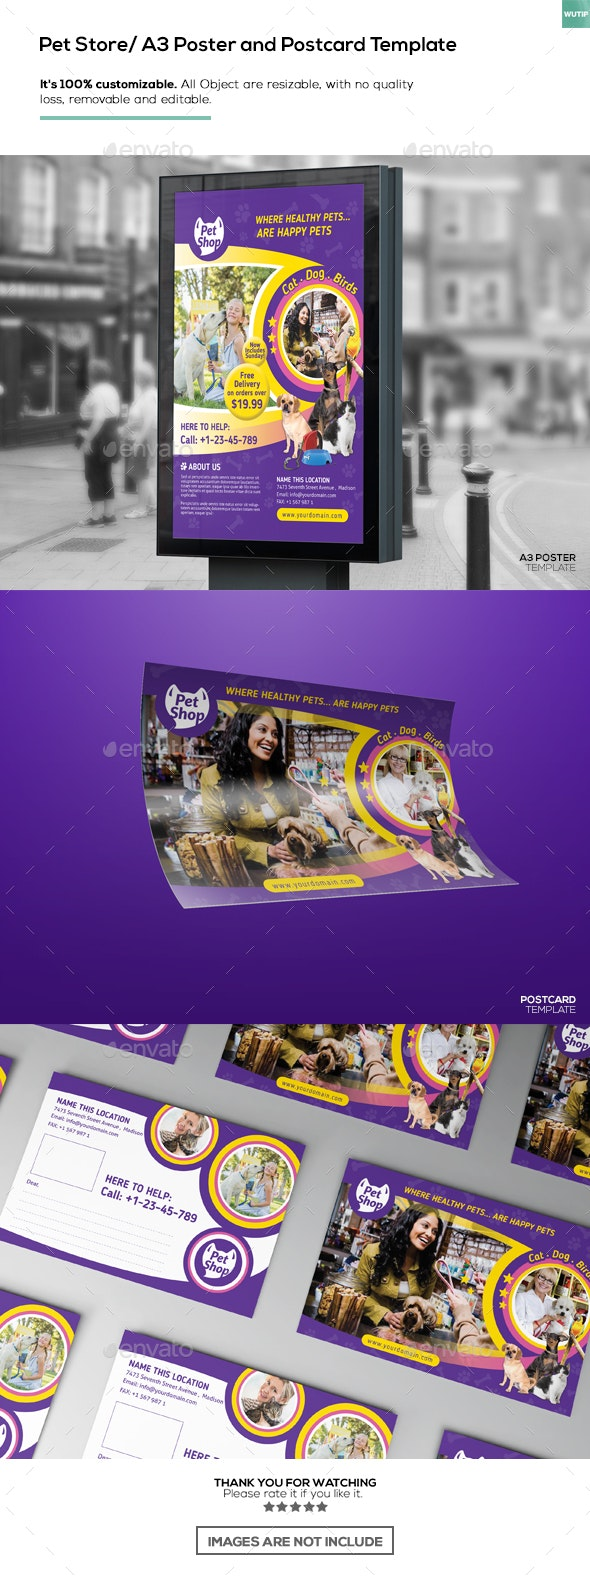 Pet Store/ A3 Poster and Postcard Template